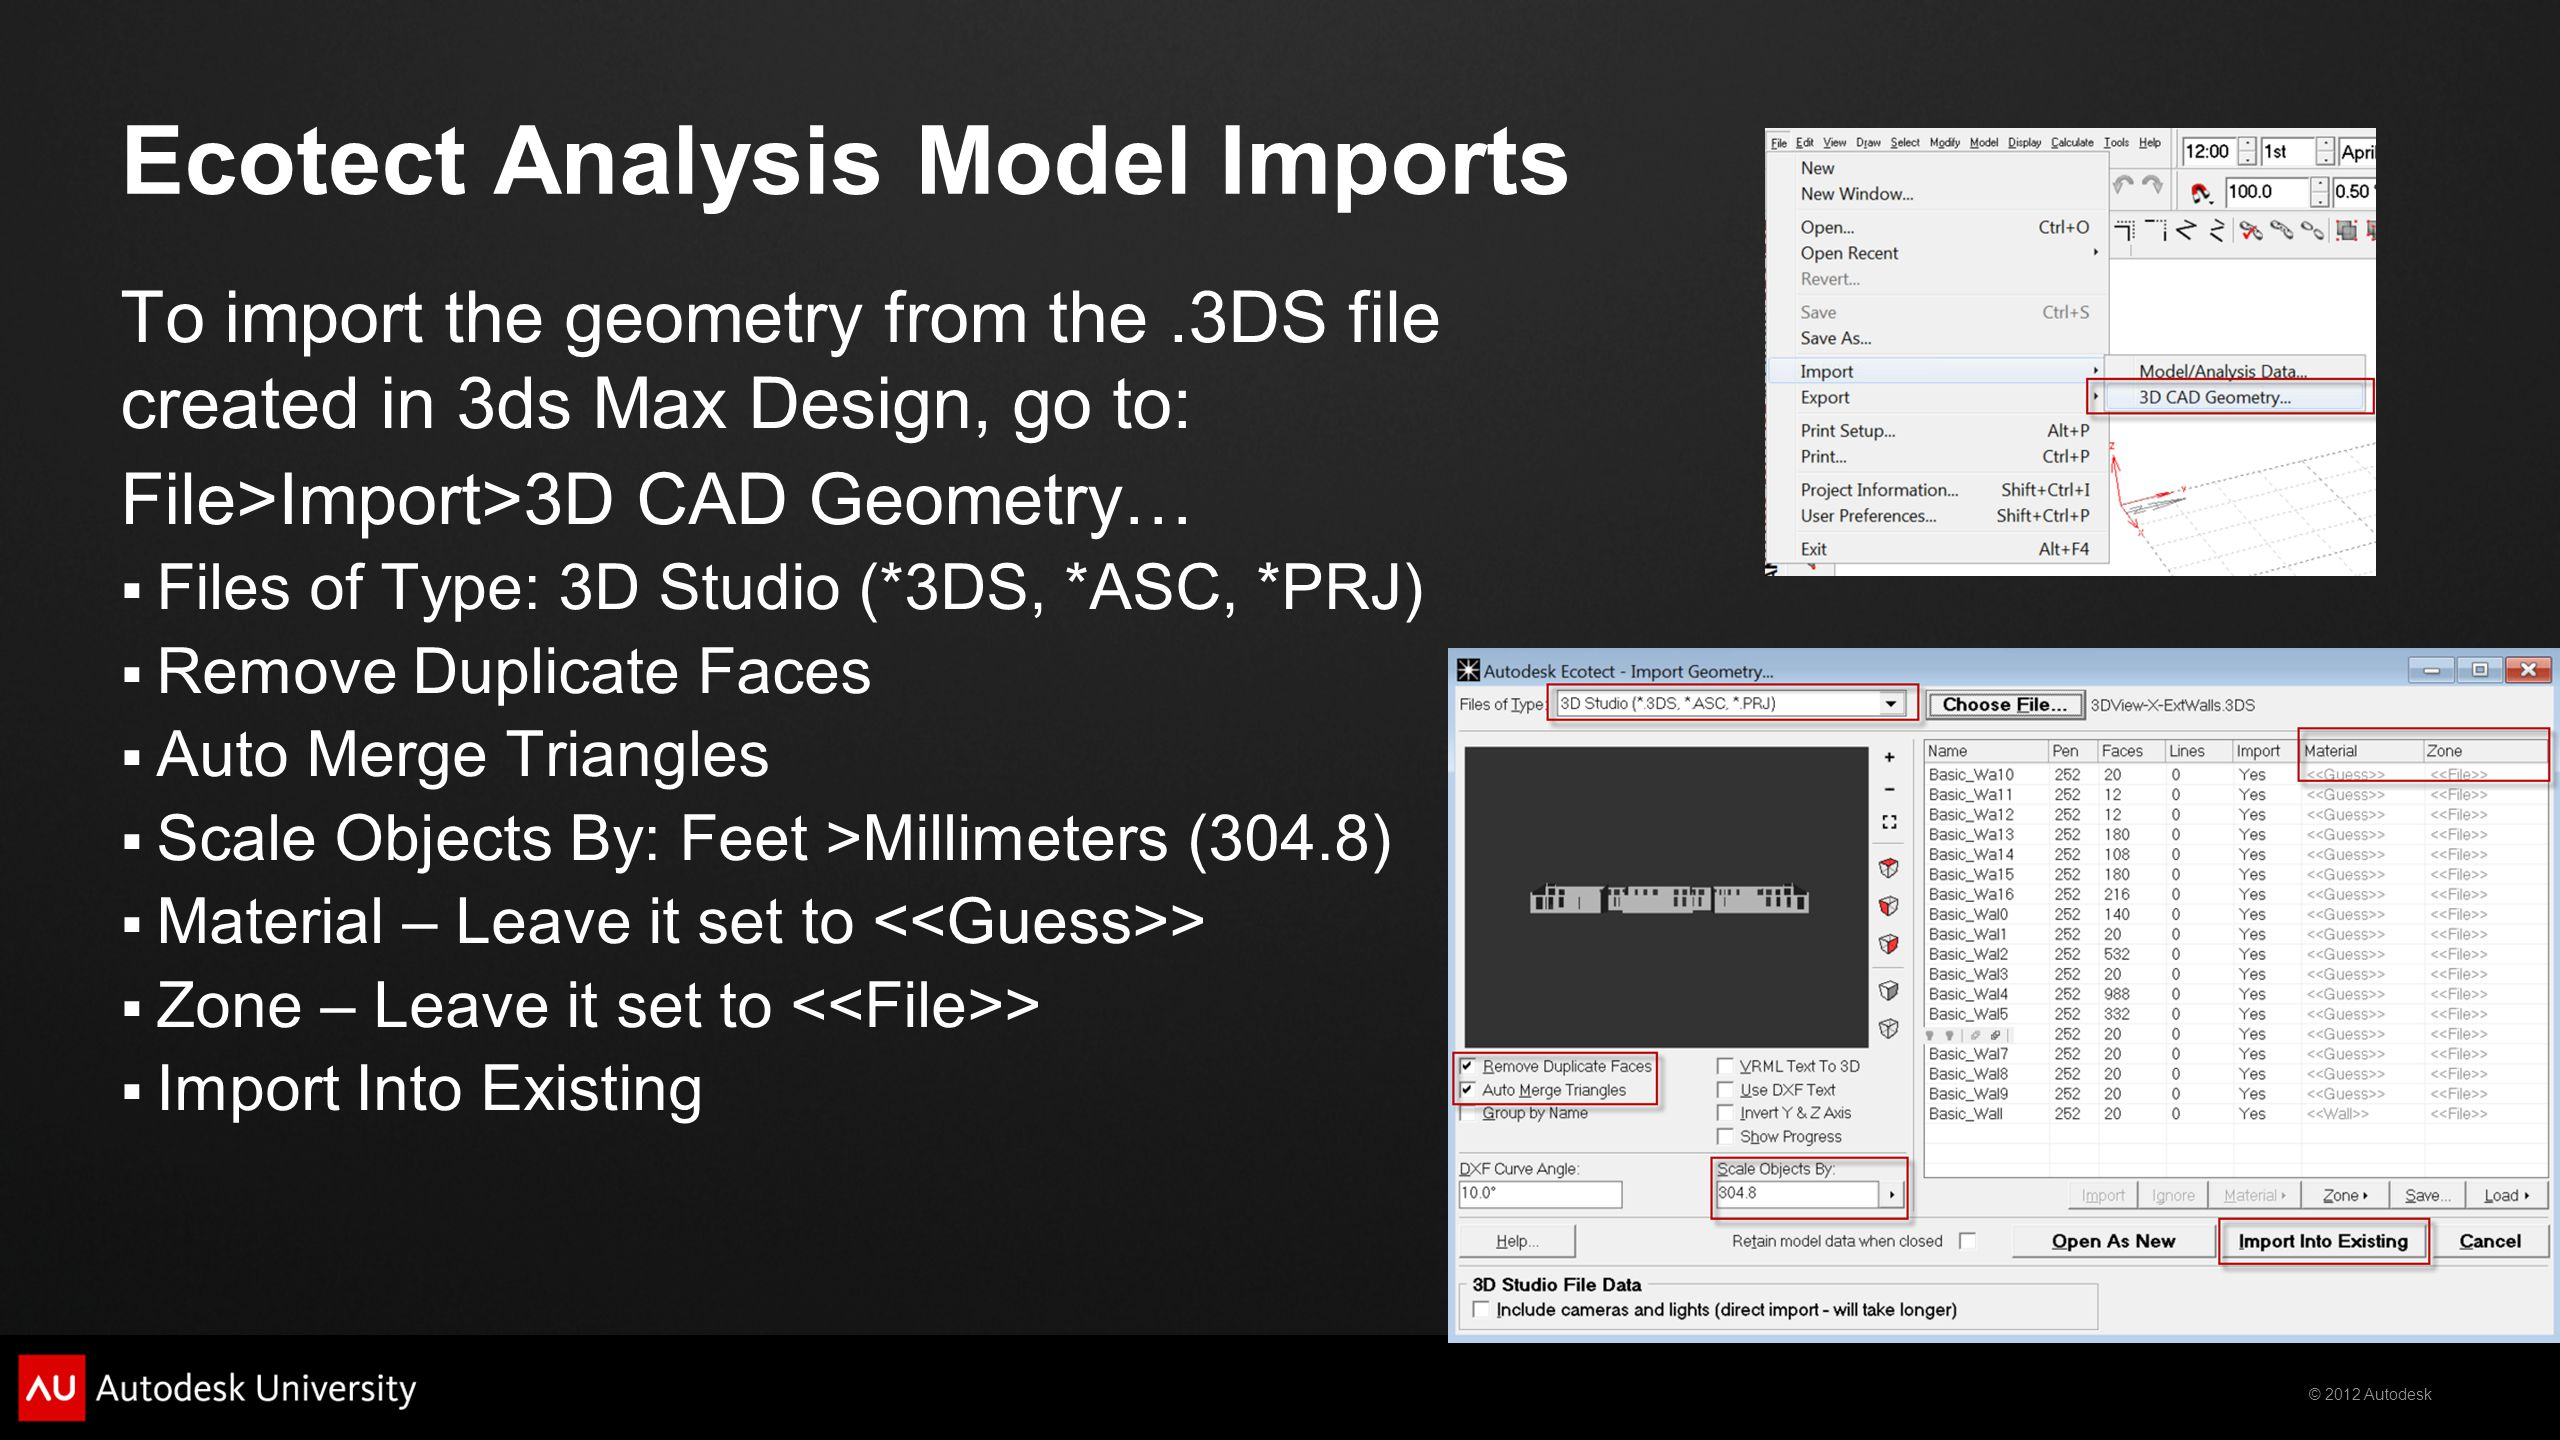 Ecotect Analysis Model Imports